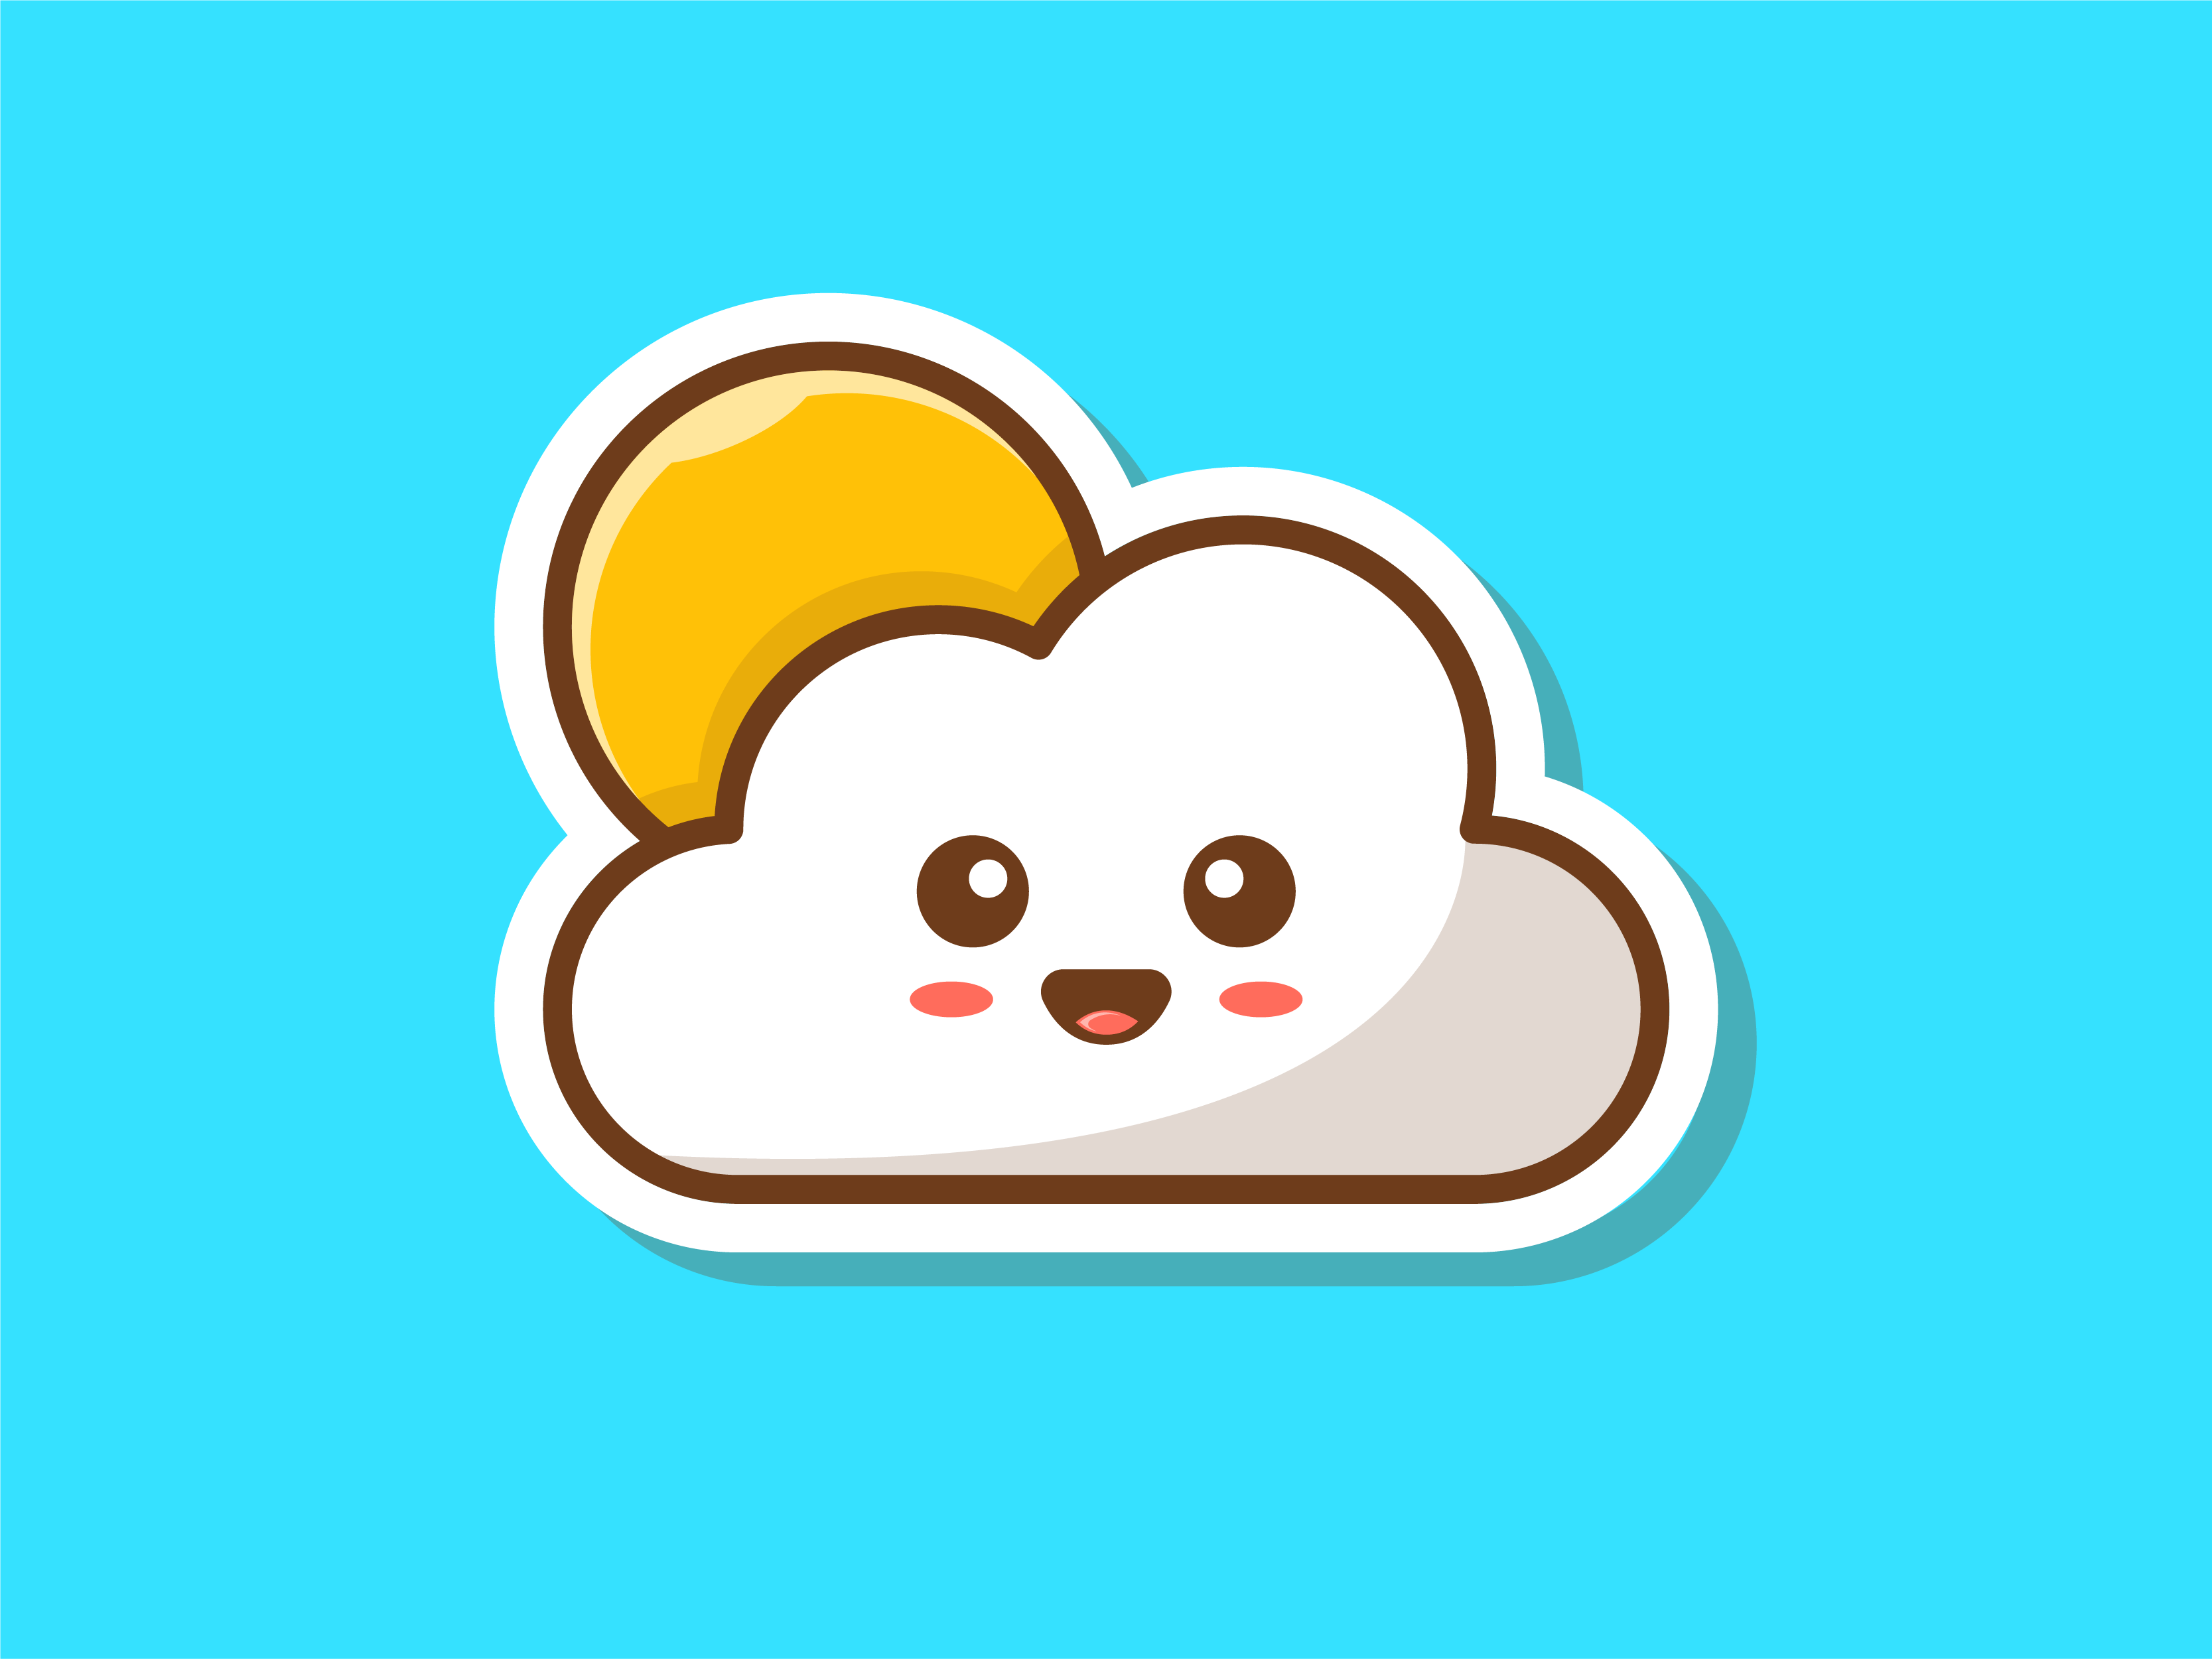 Clouds dribbble 02